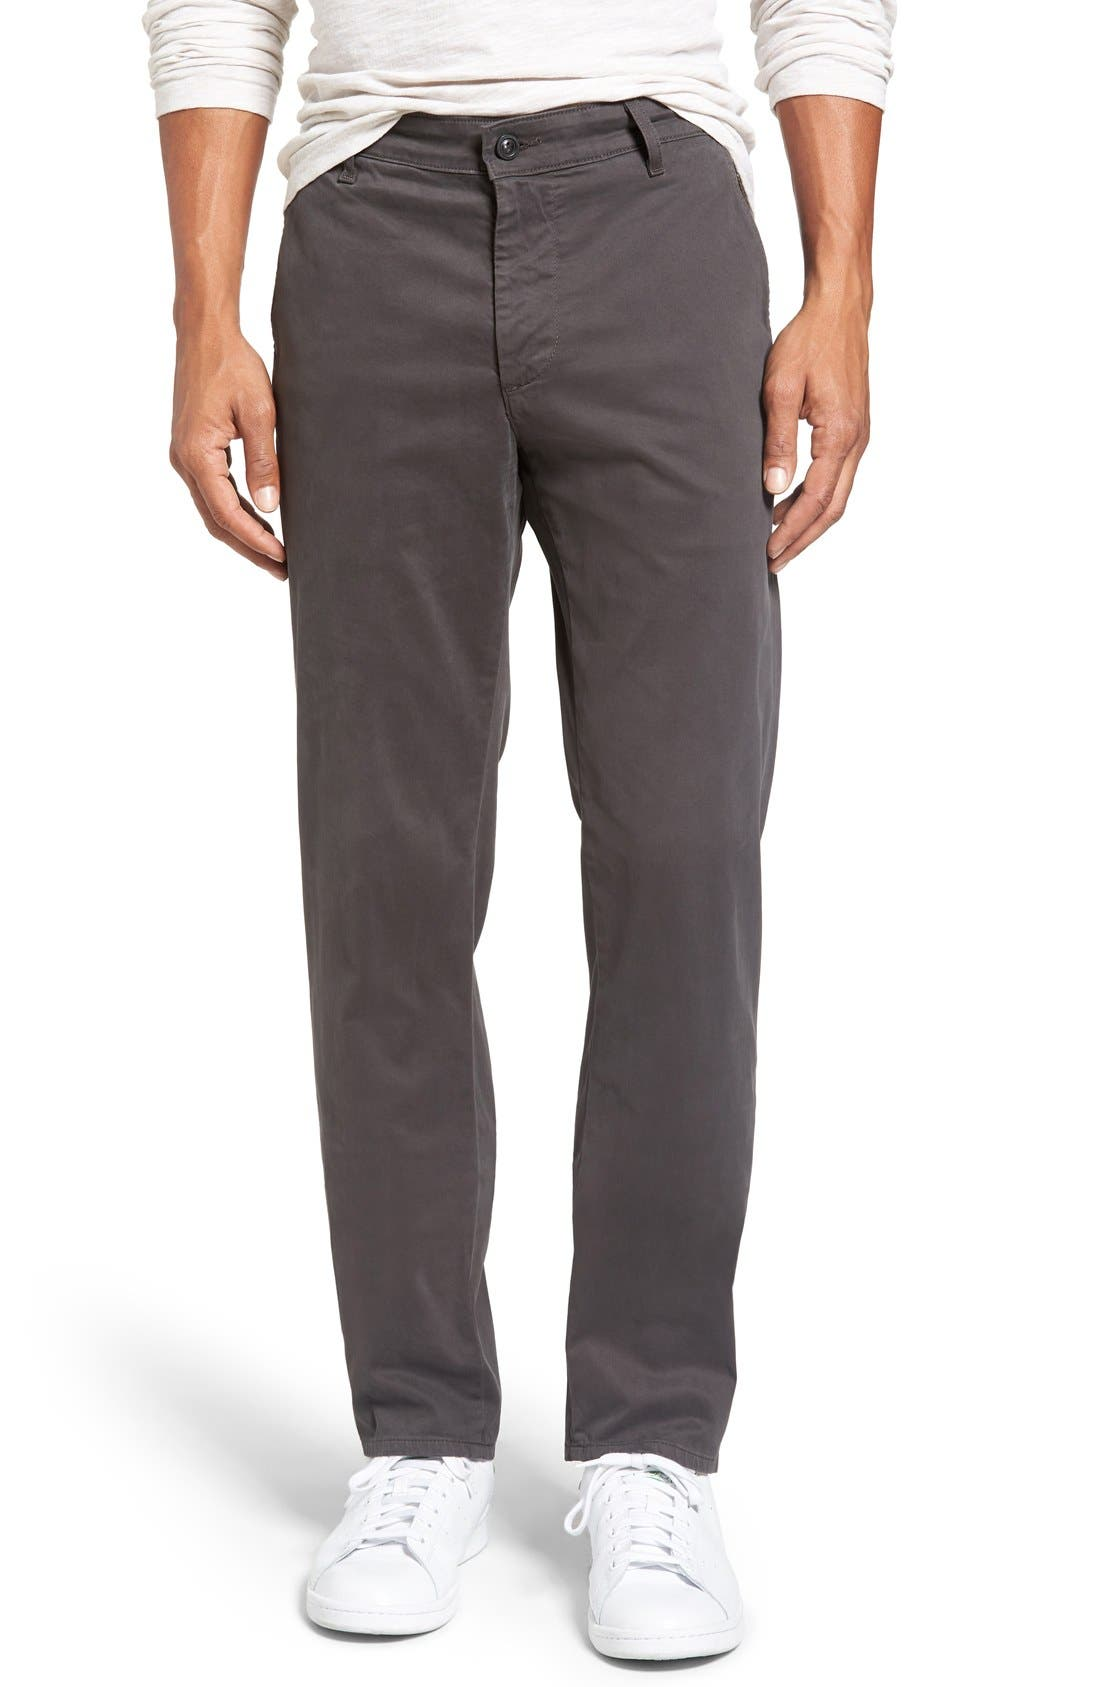 'The Lux' Tailored Straight Leg Chinos,                             Alternate thumbnail 63, color,